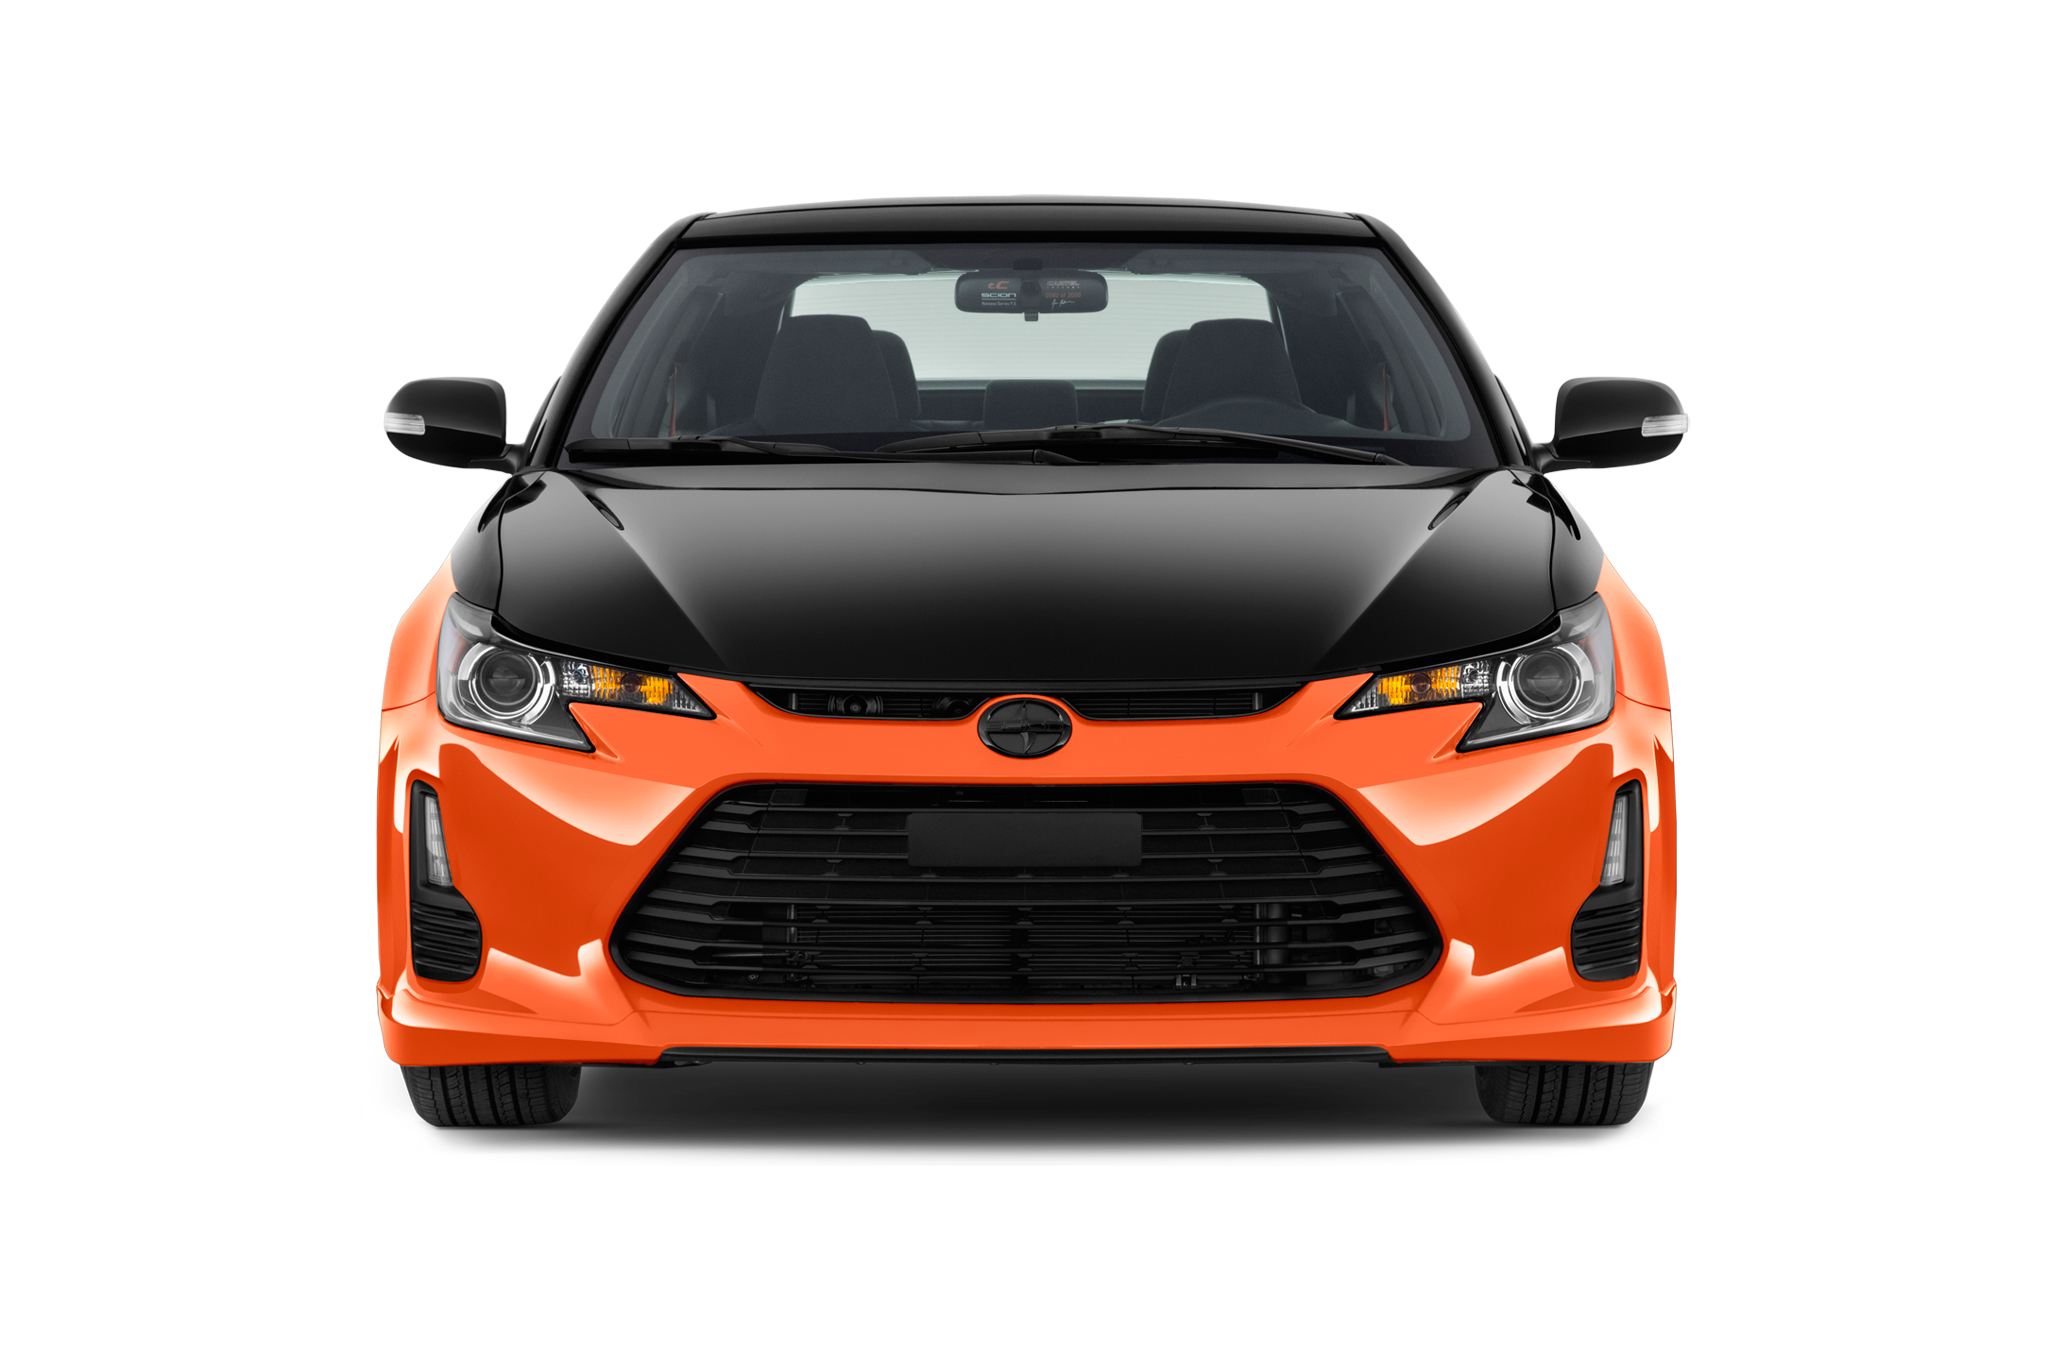 2015 Scion Tc 0 60 >> 2015 Scion tC Release Series 9.0 Announced